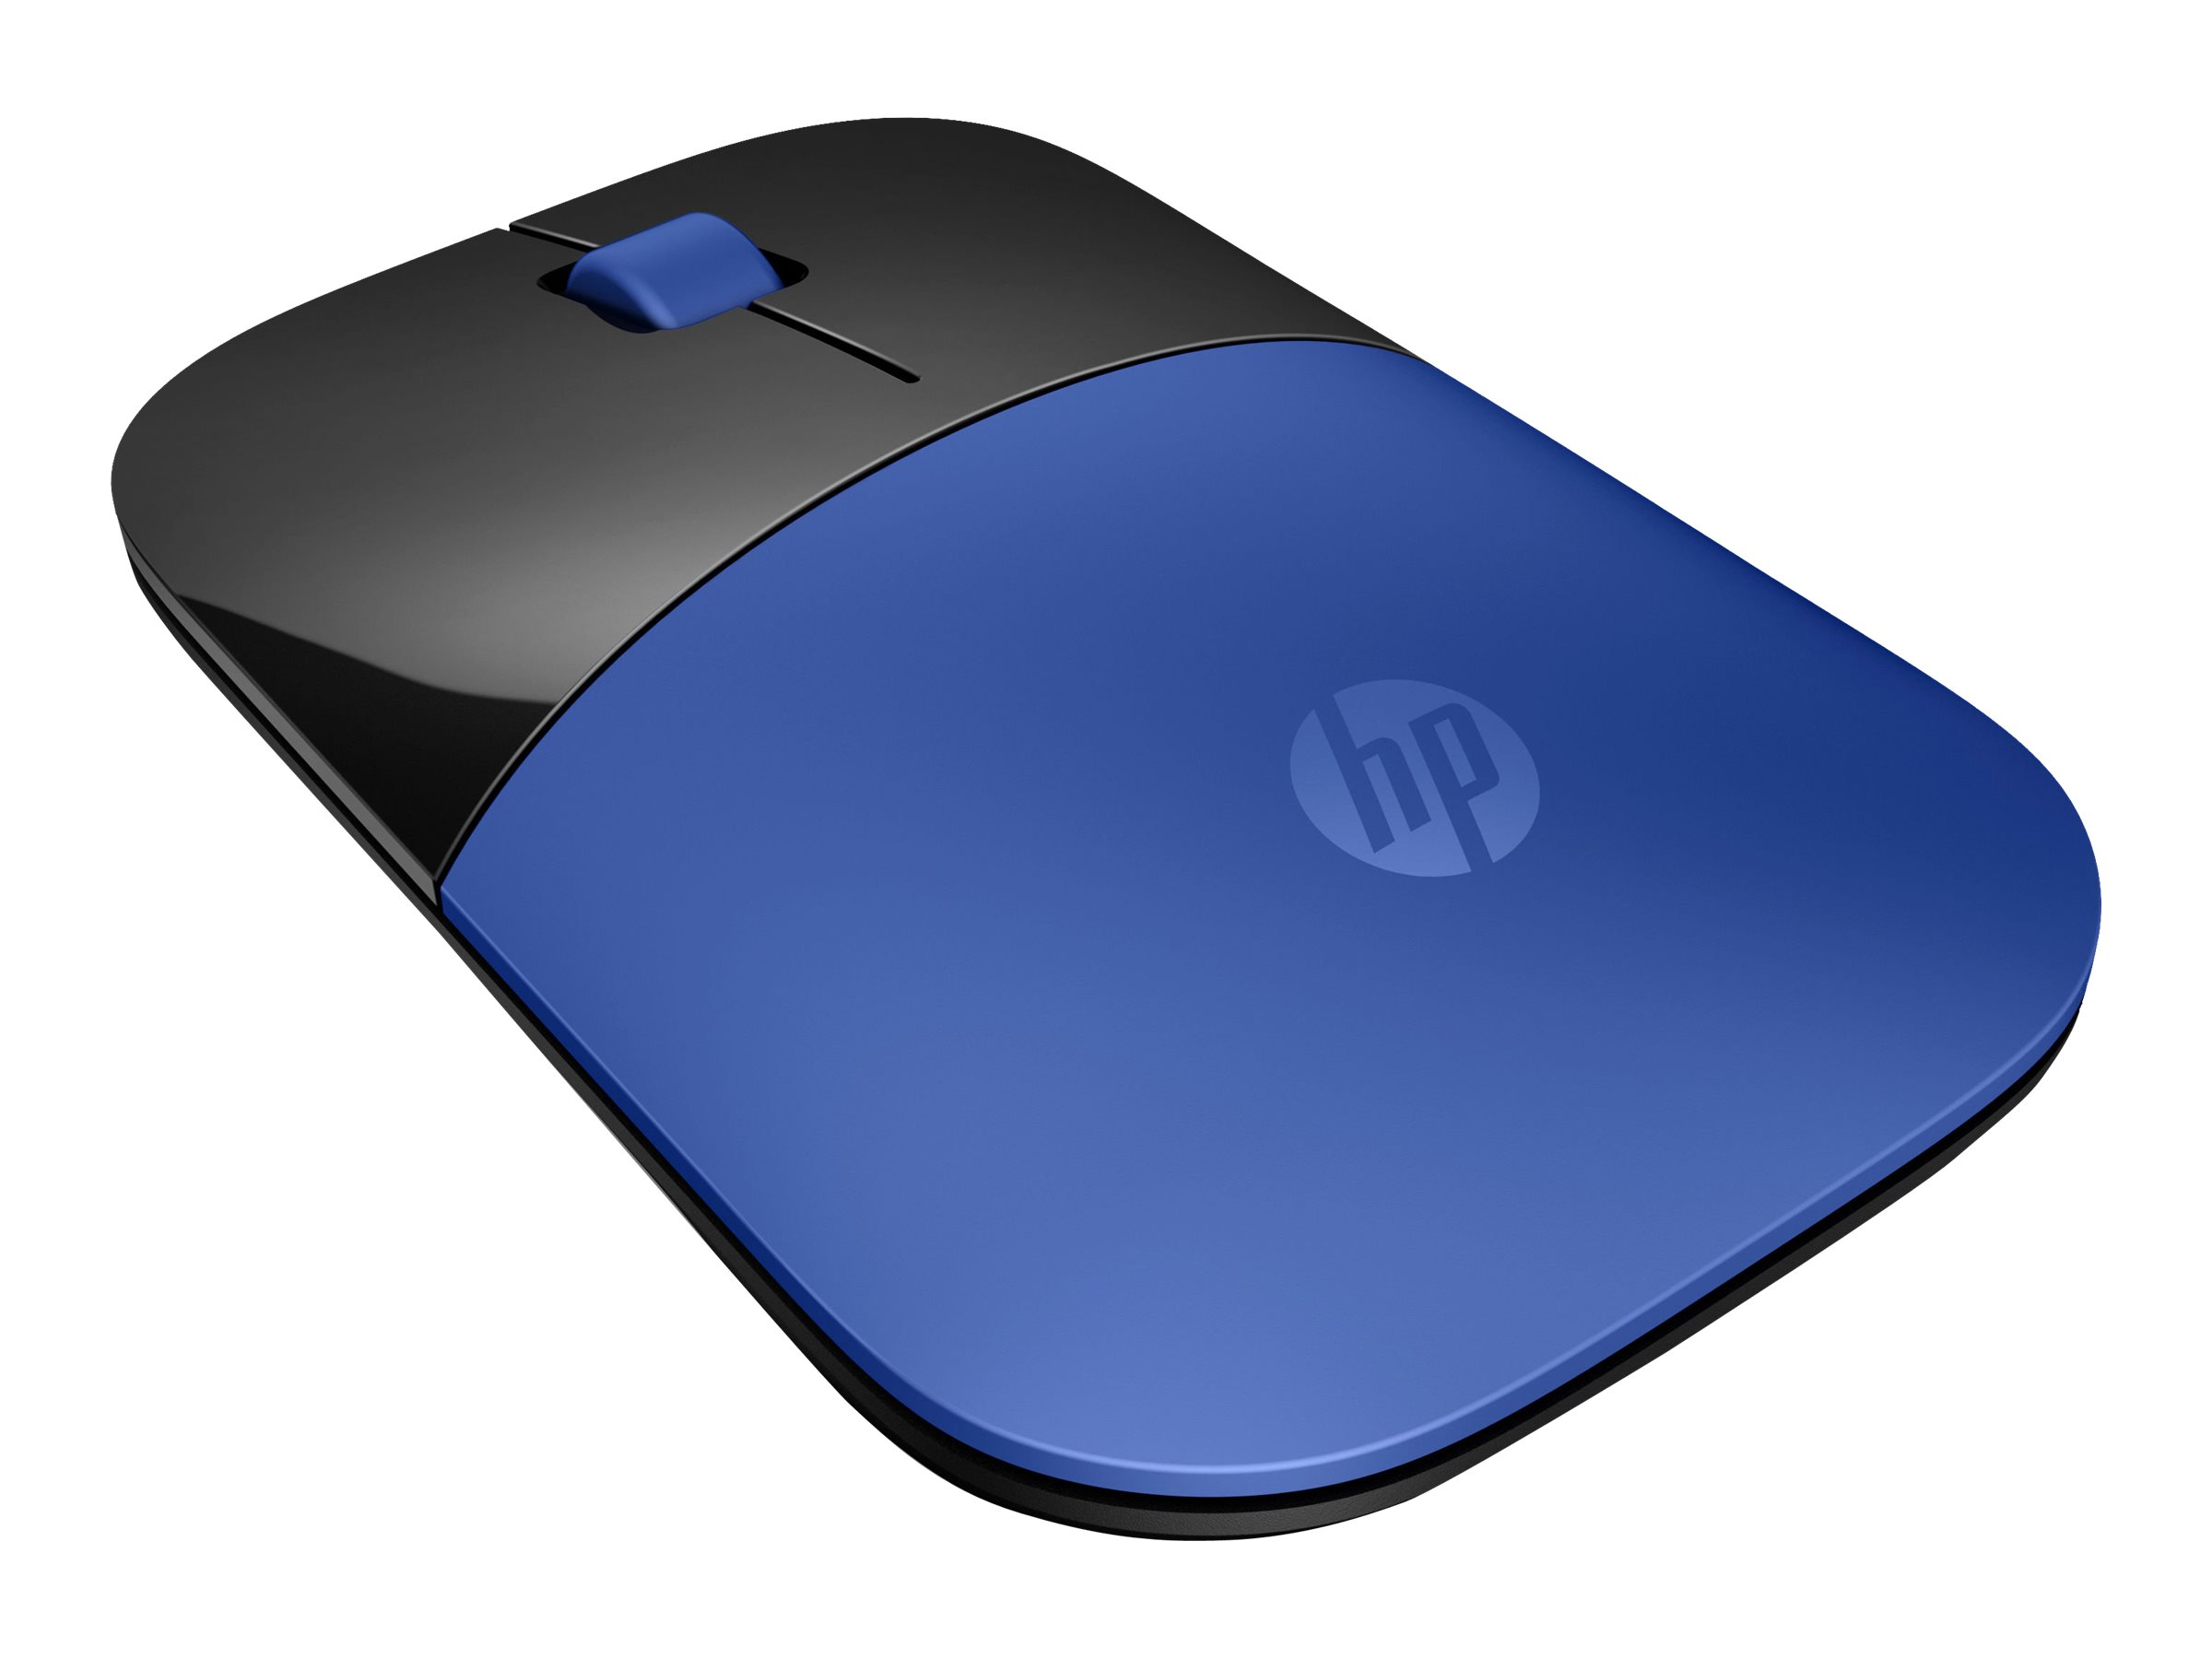 Image for Hp Z3700 - Mouse - 2.4 Ghz - Blue from Circuit City